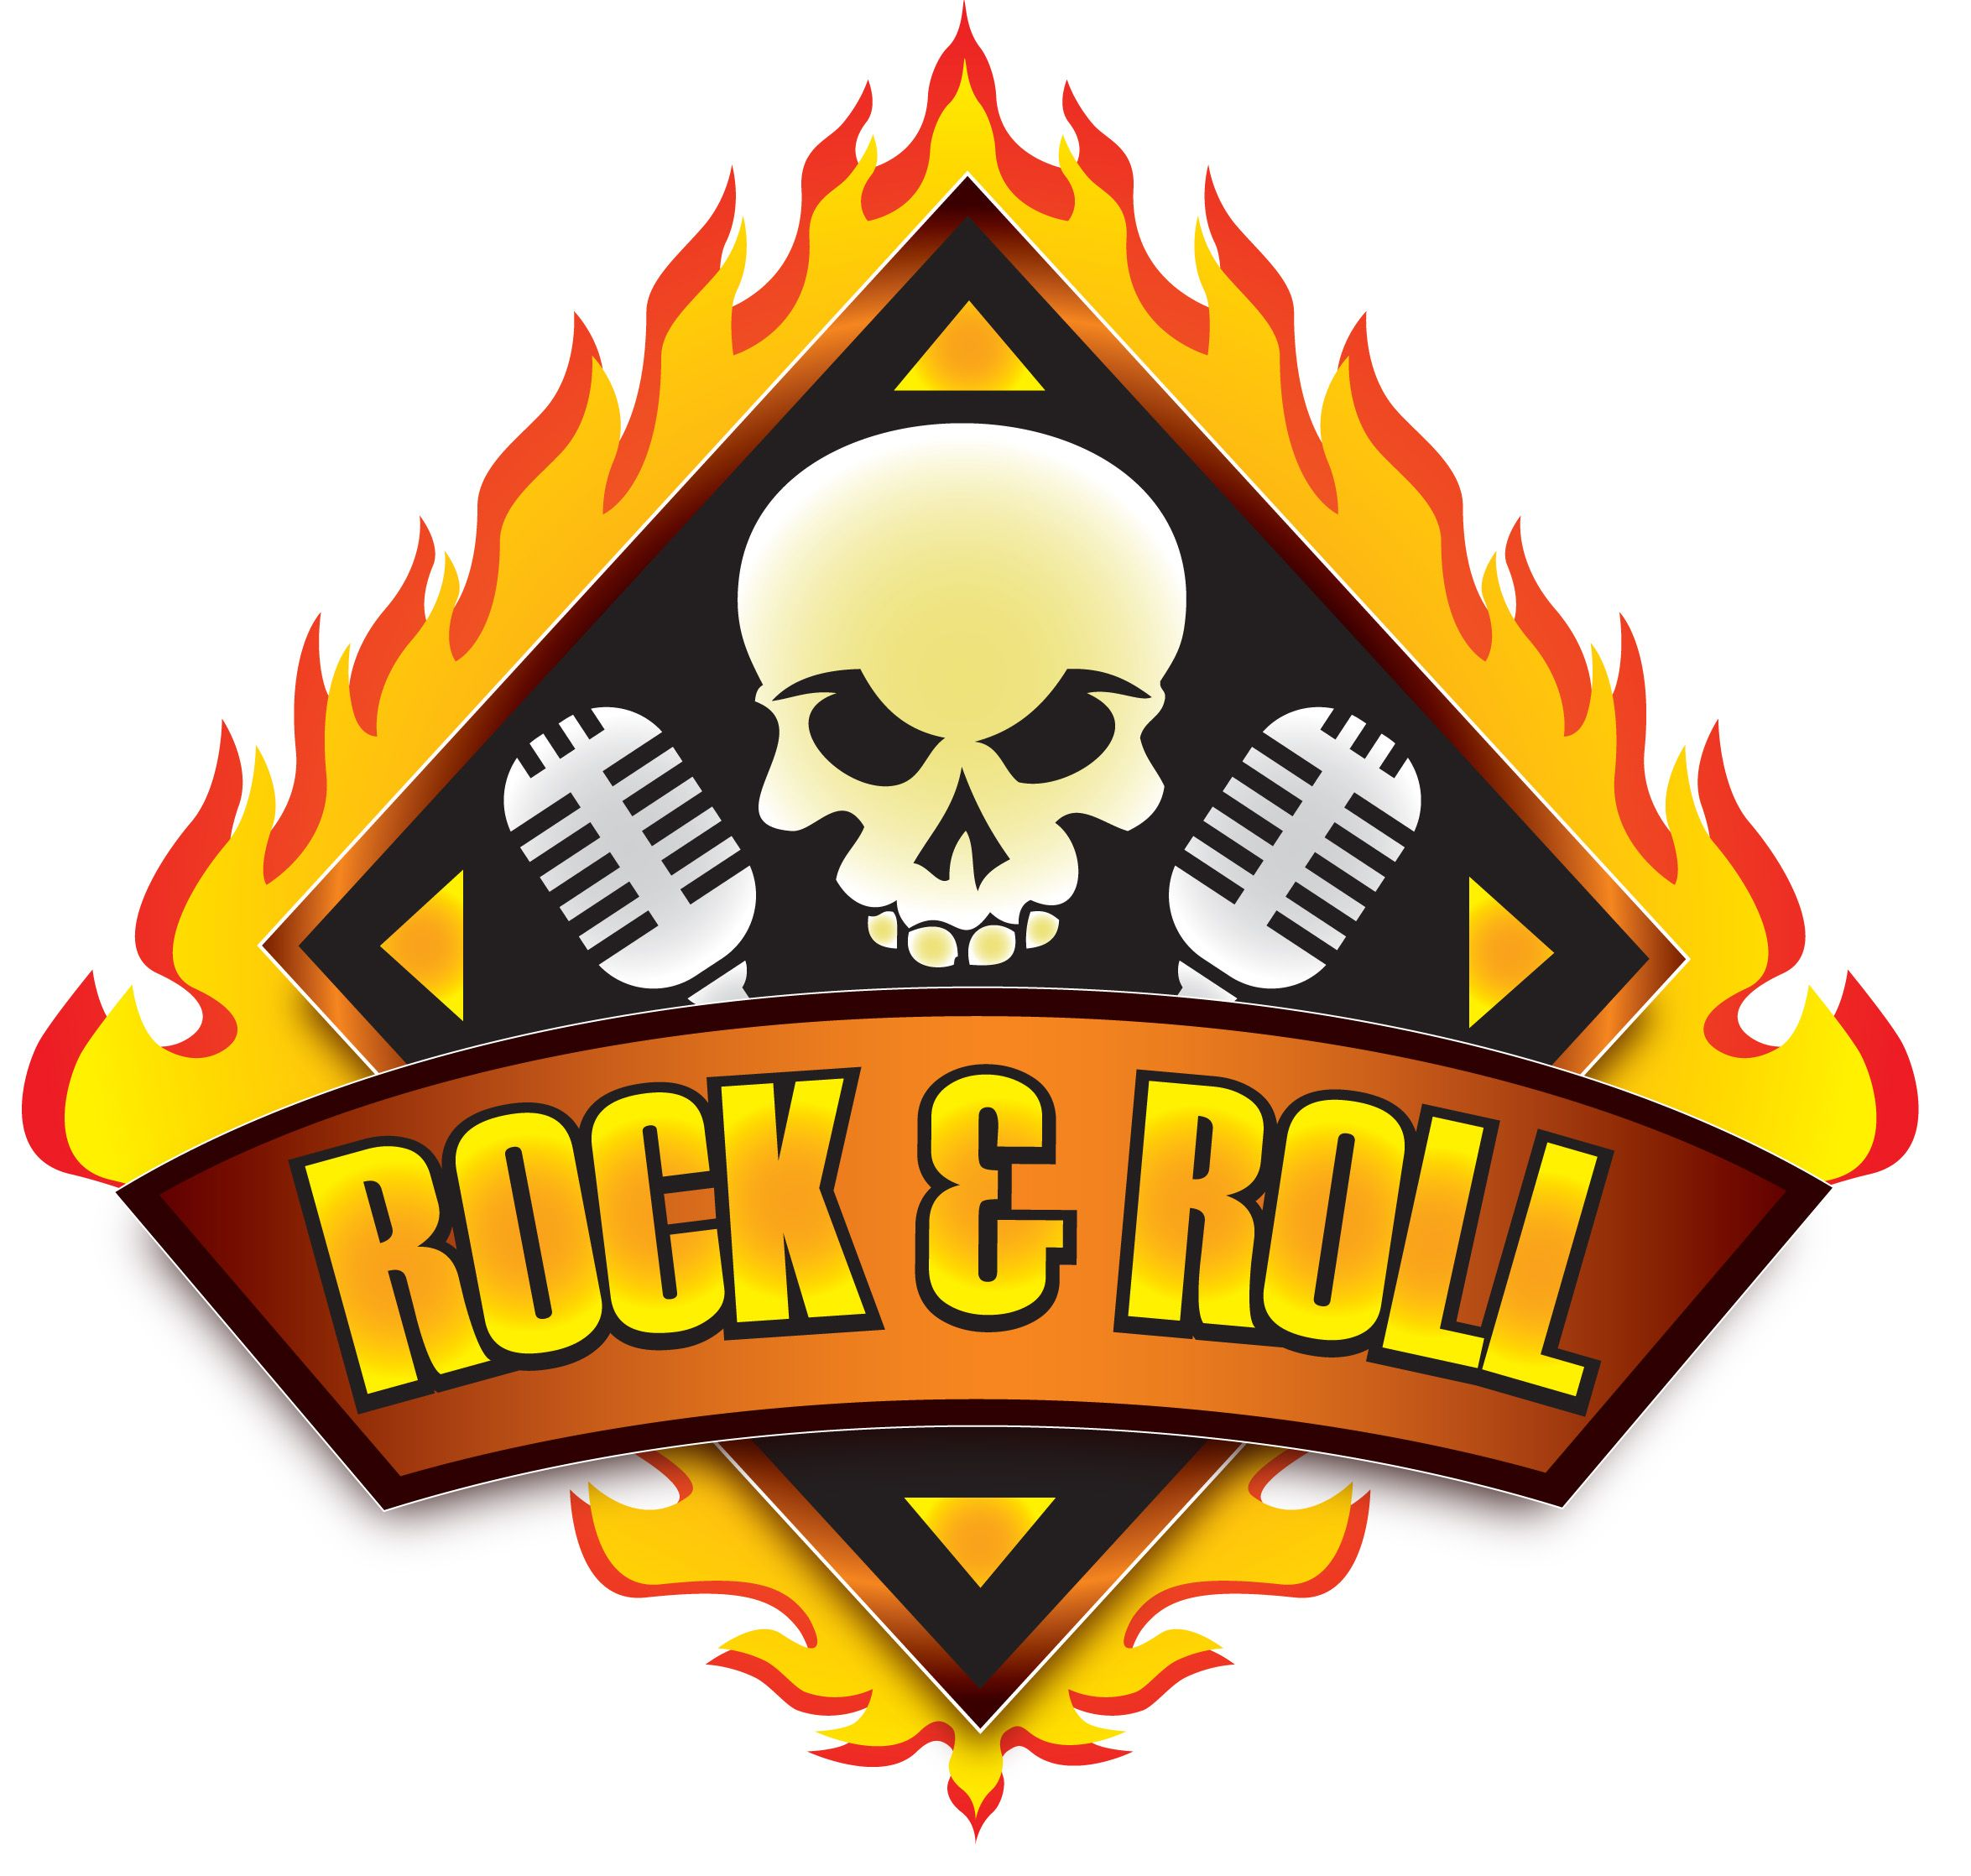 rock and roll logos clipart vector illustration u2022 rh namnet org rock and roll logo ideas rock and roll logos sketch